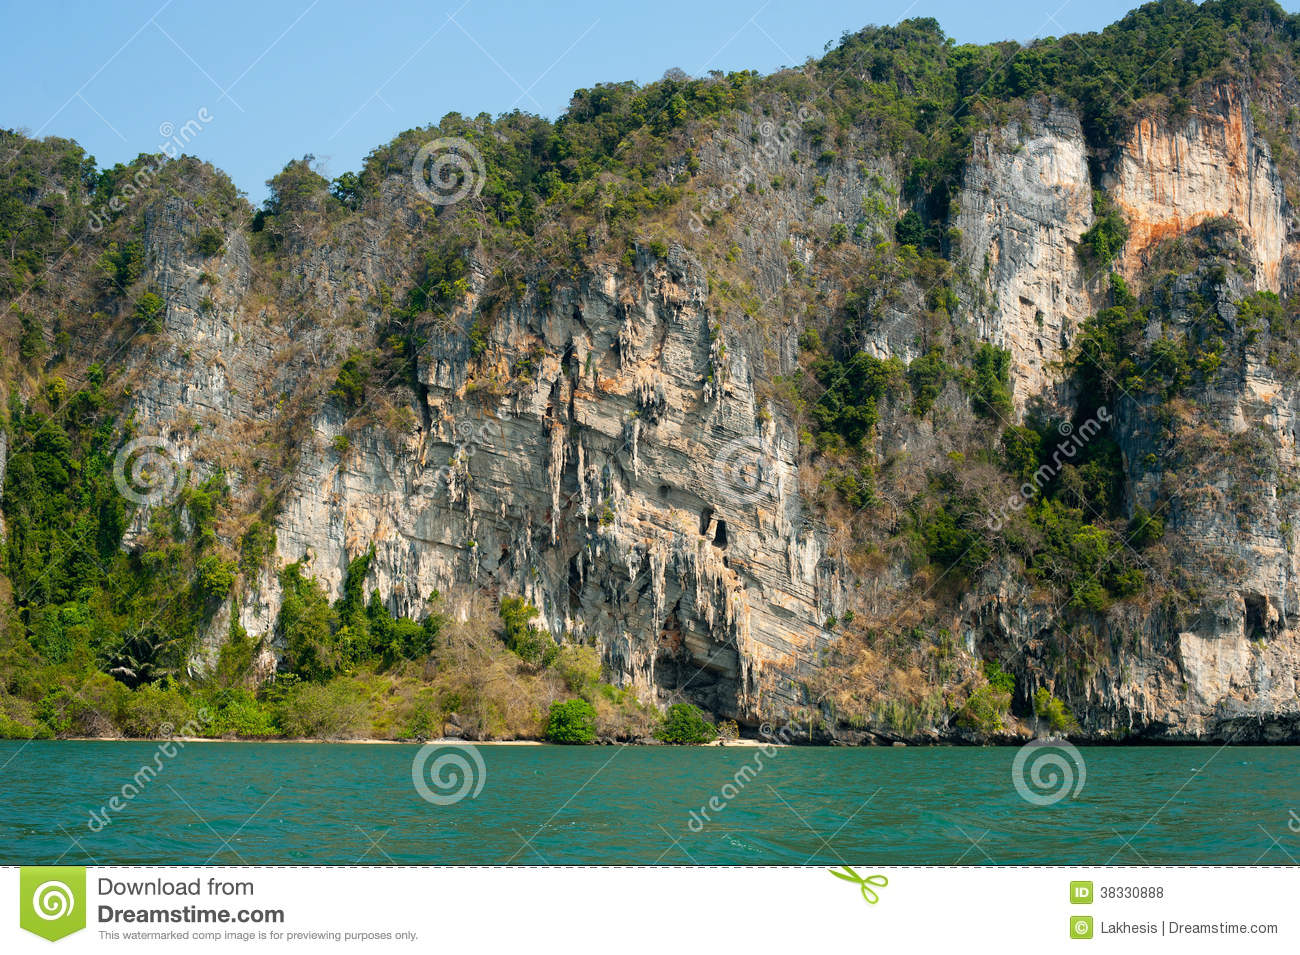 Karst Limestone Structure Of Tropical Island With Forest. Pranan.